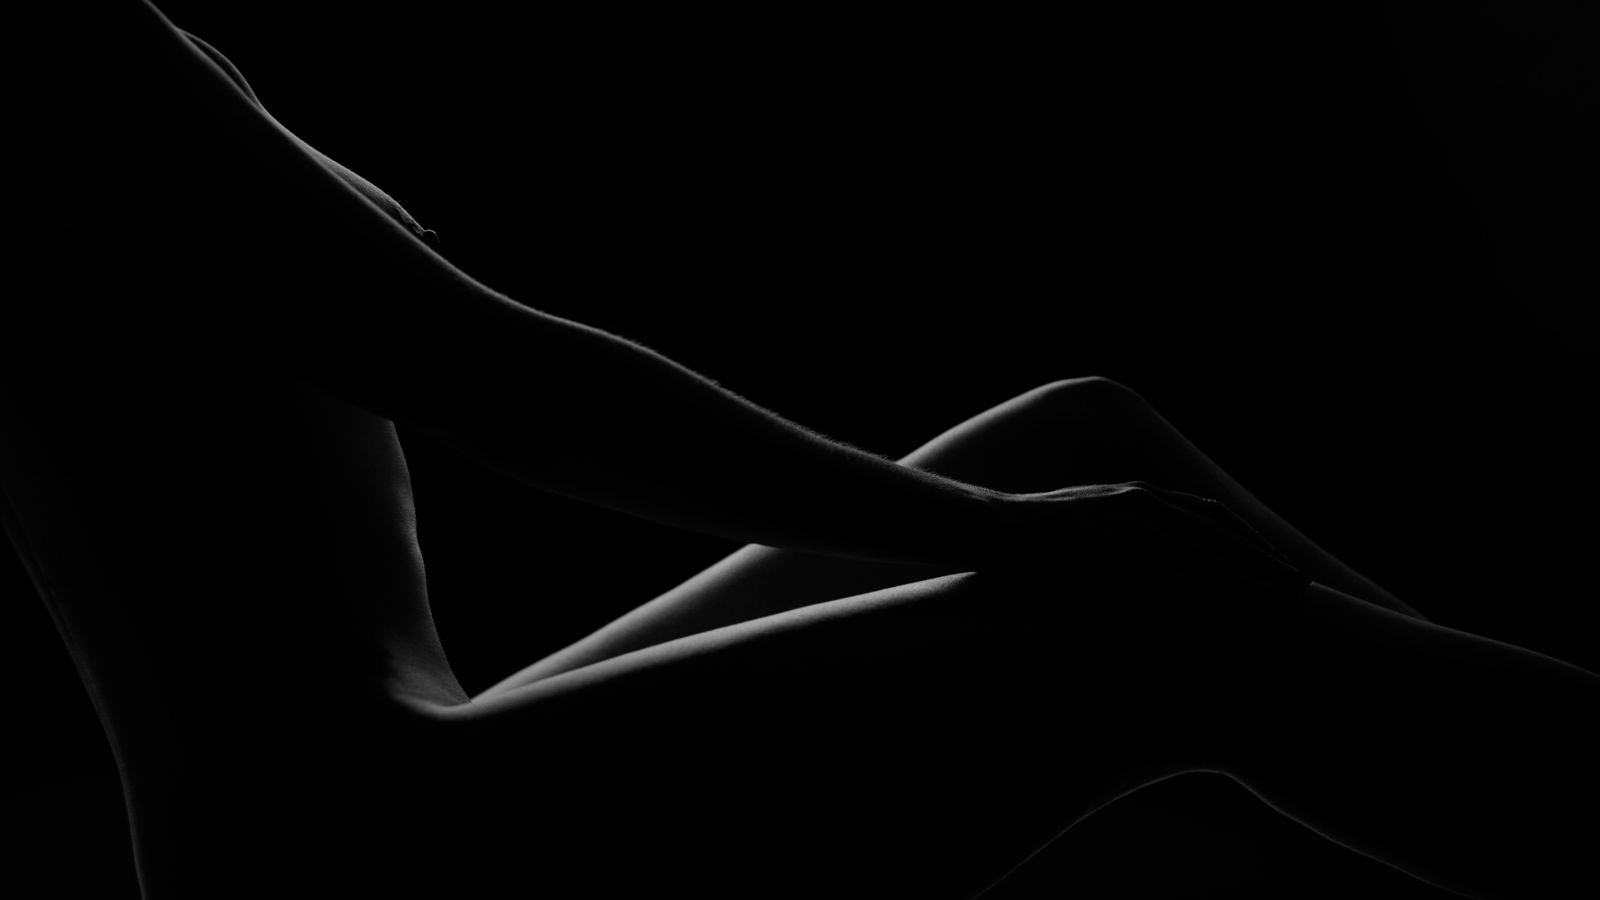 160208_WRBodyscapes_114.jpg